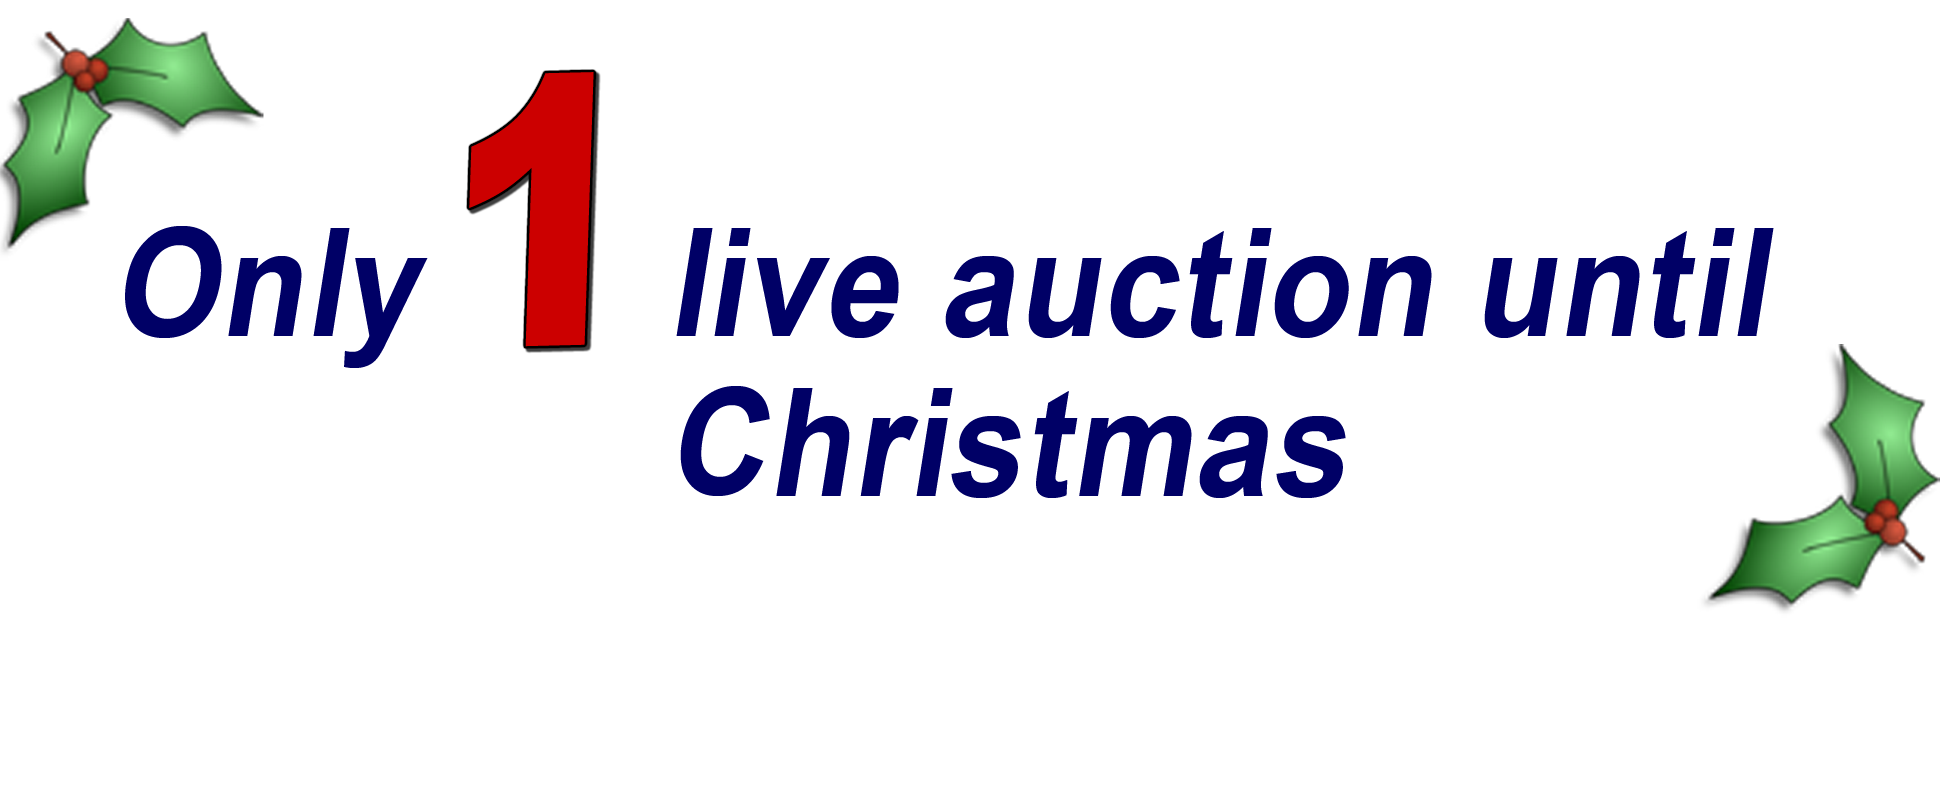 Only 2 auctions until Christmas